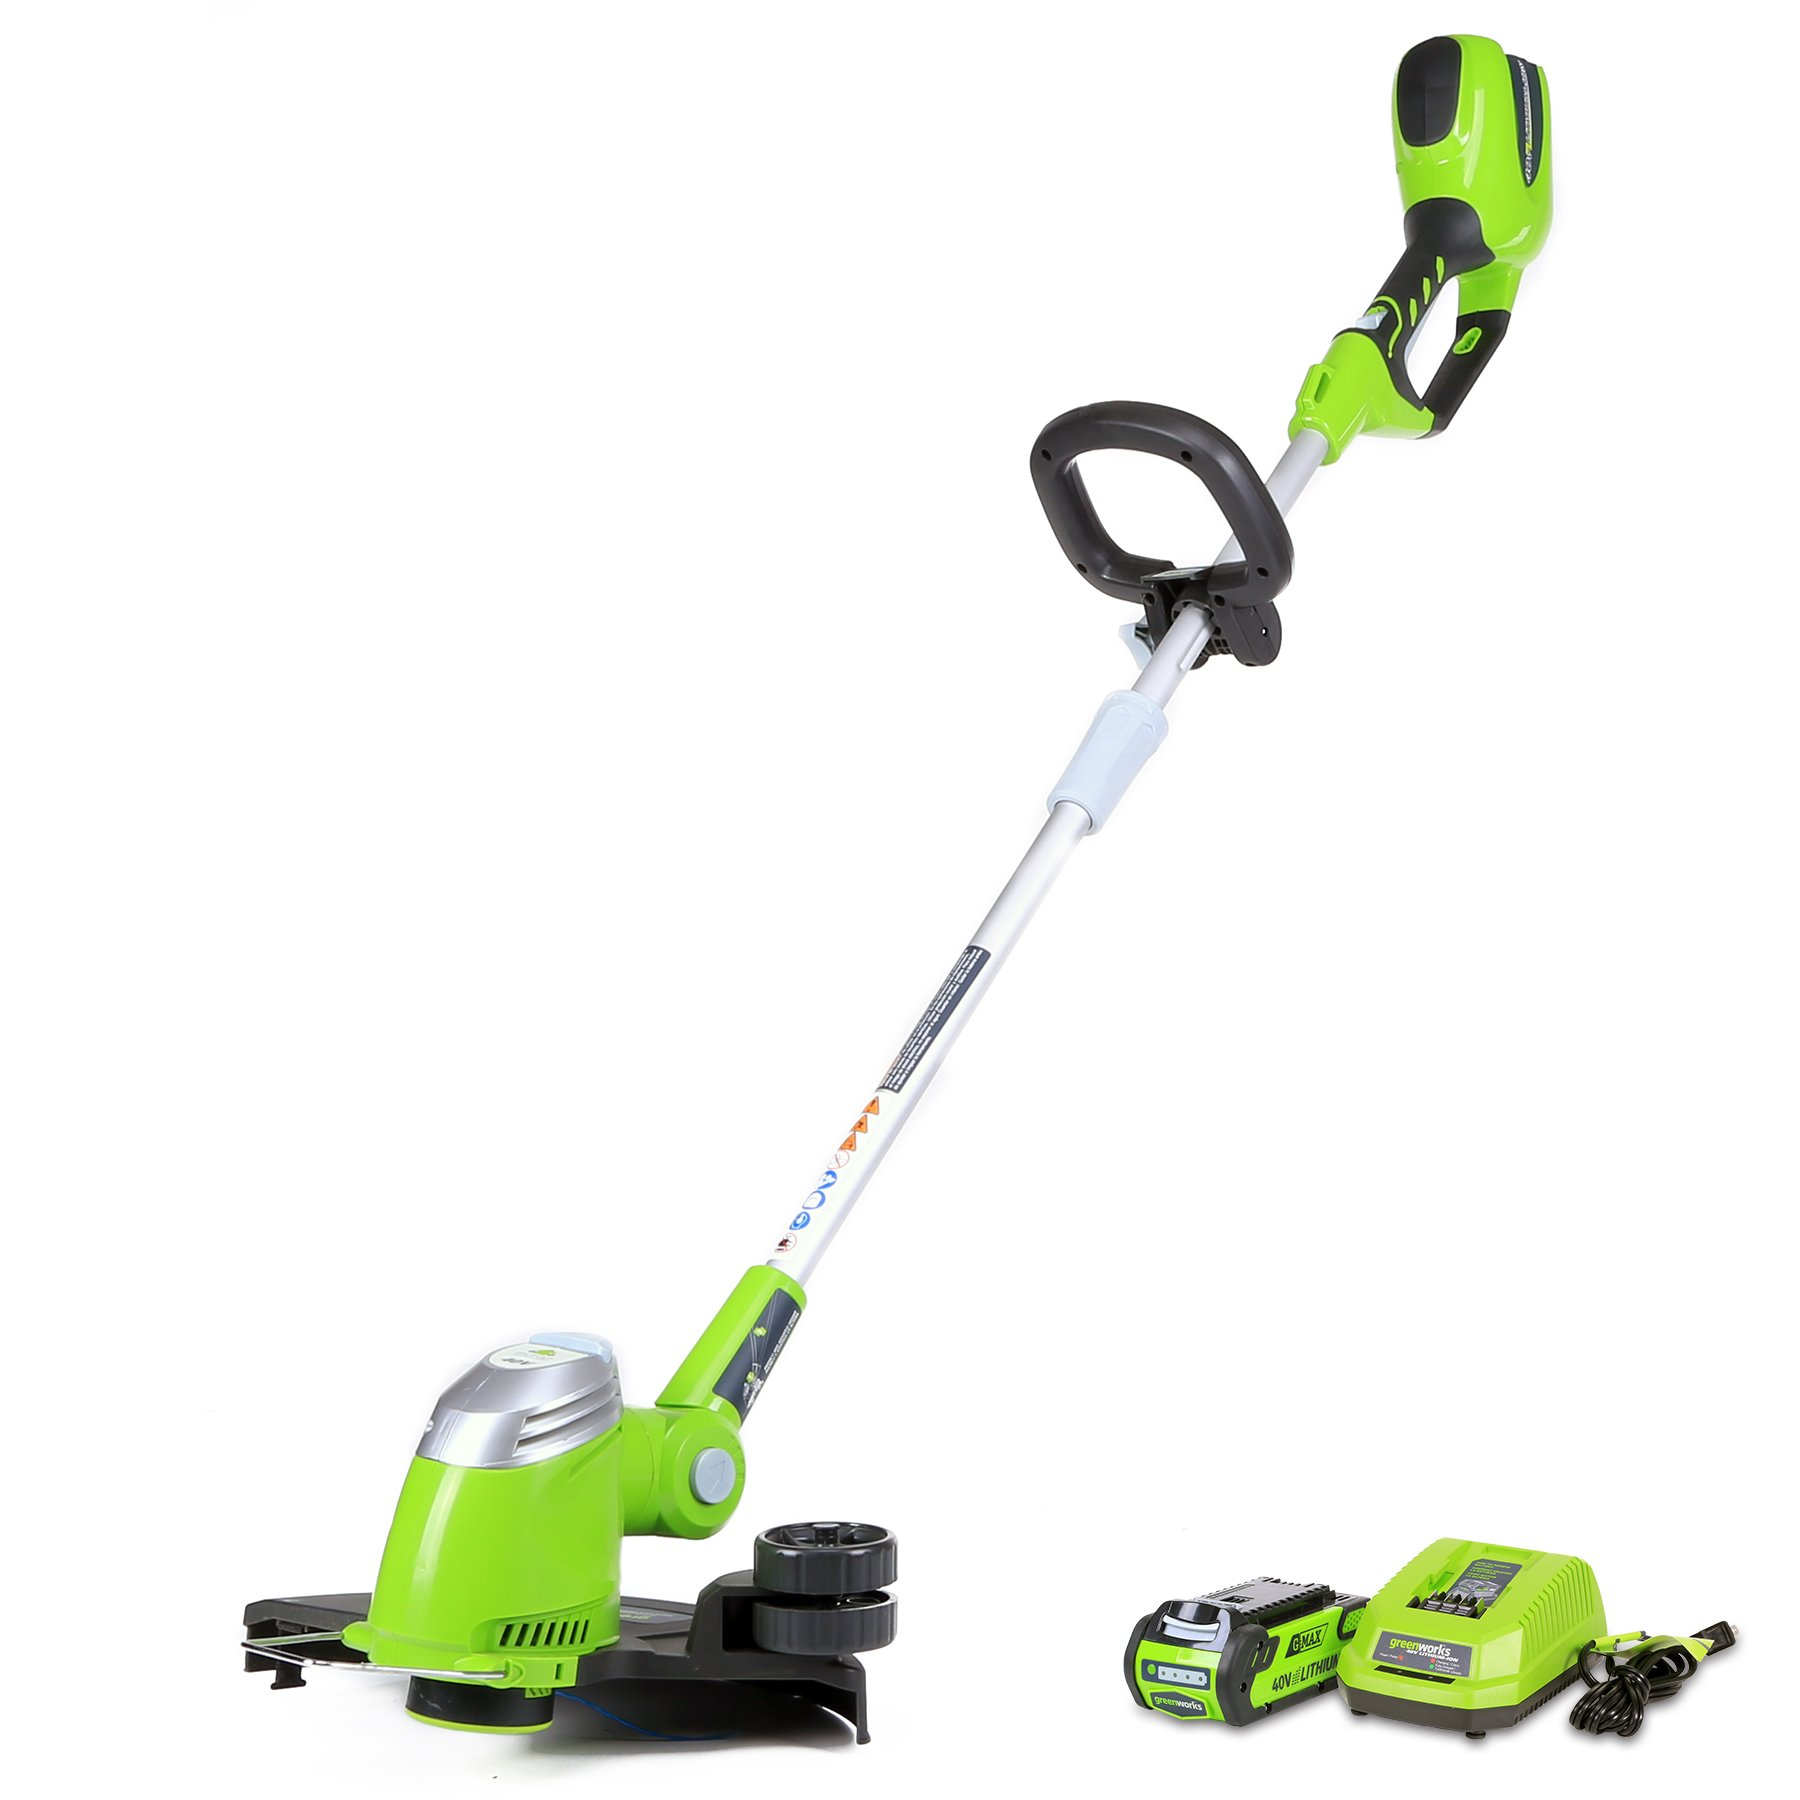 Greenworks 13 Inch Cordless Included 21302